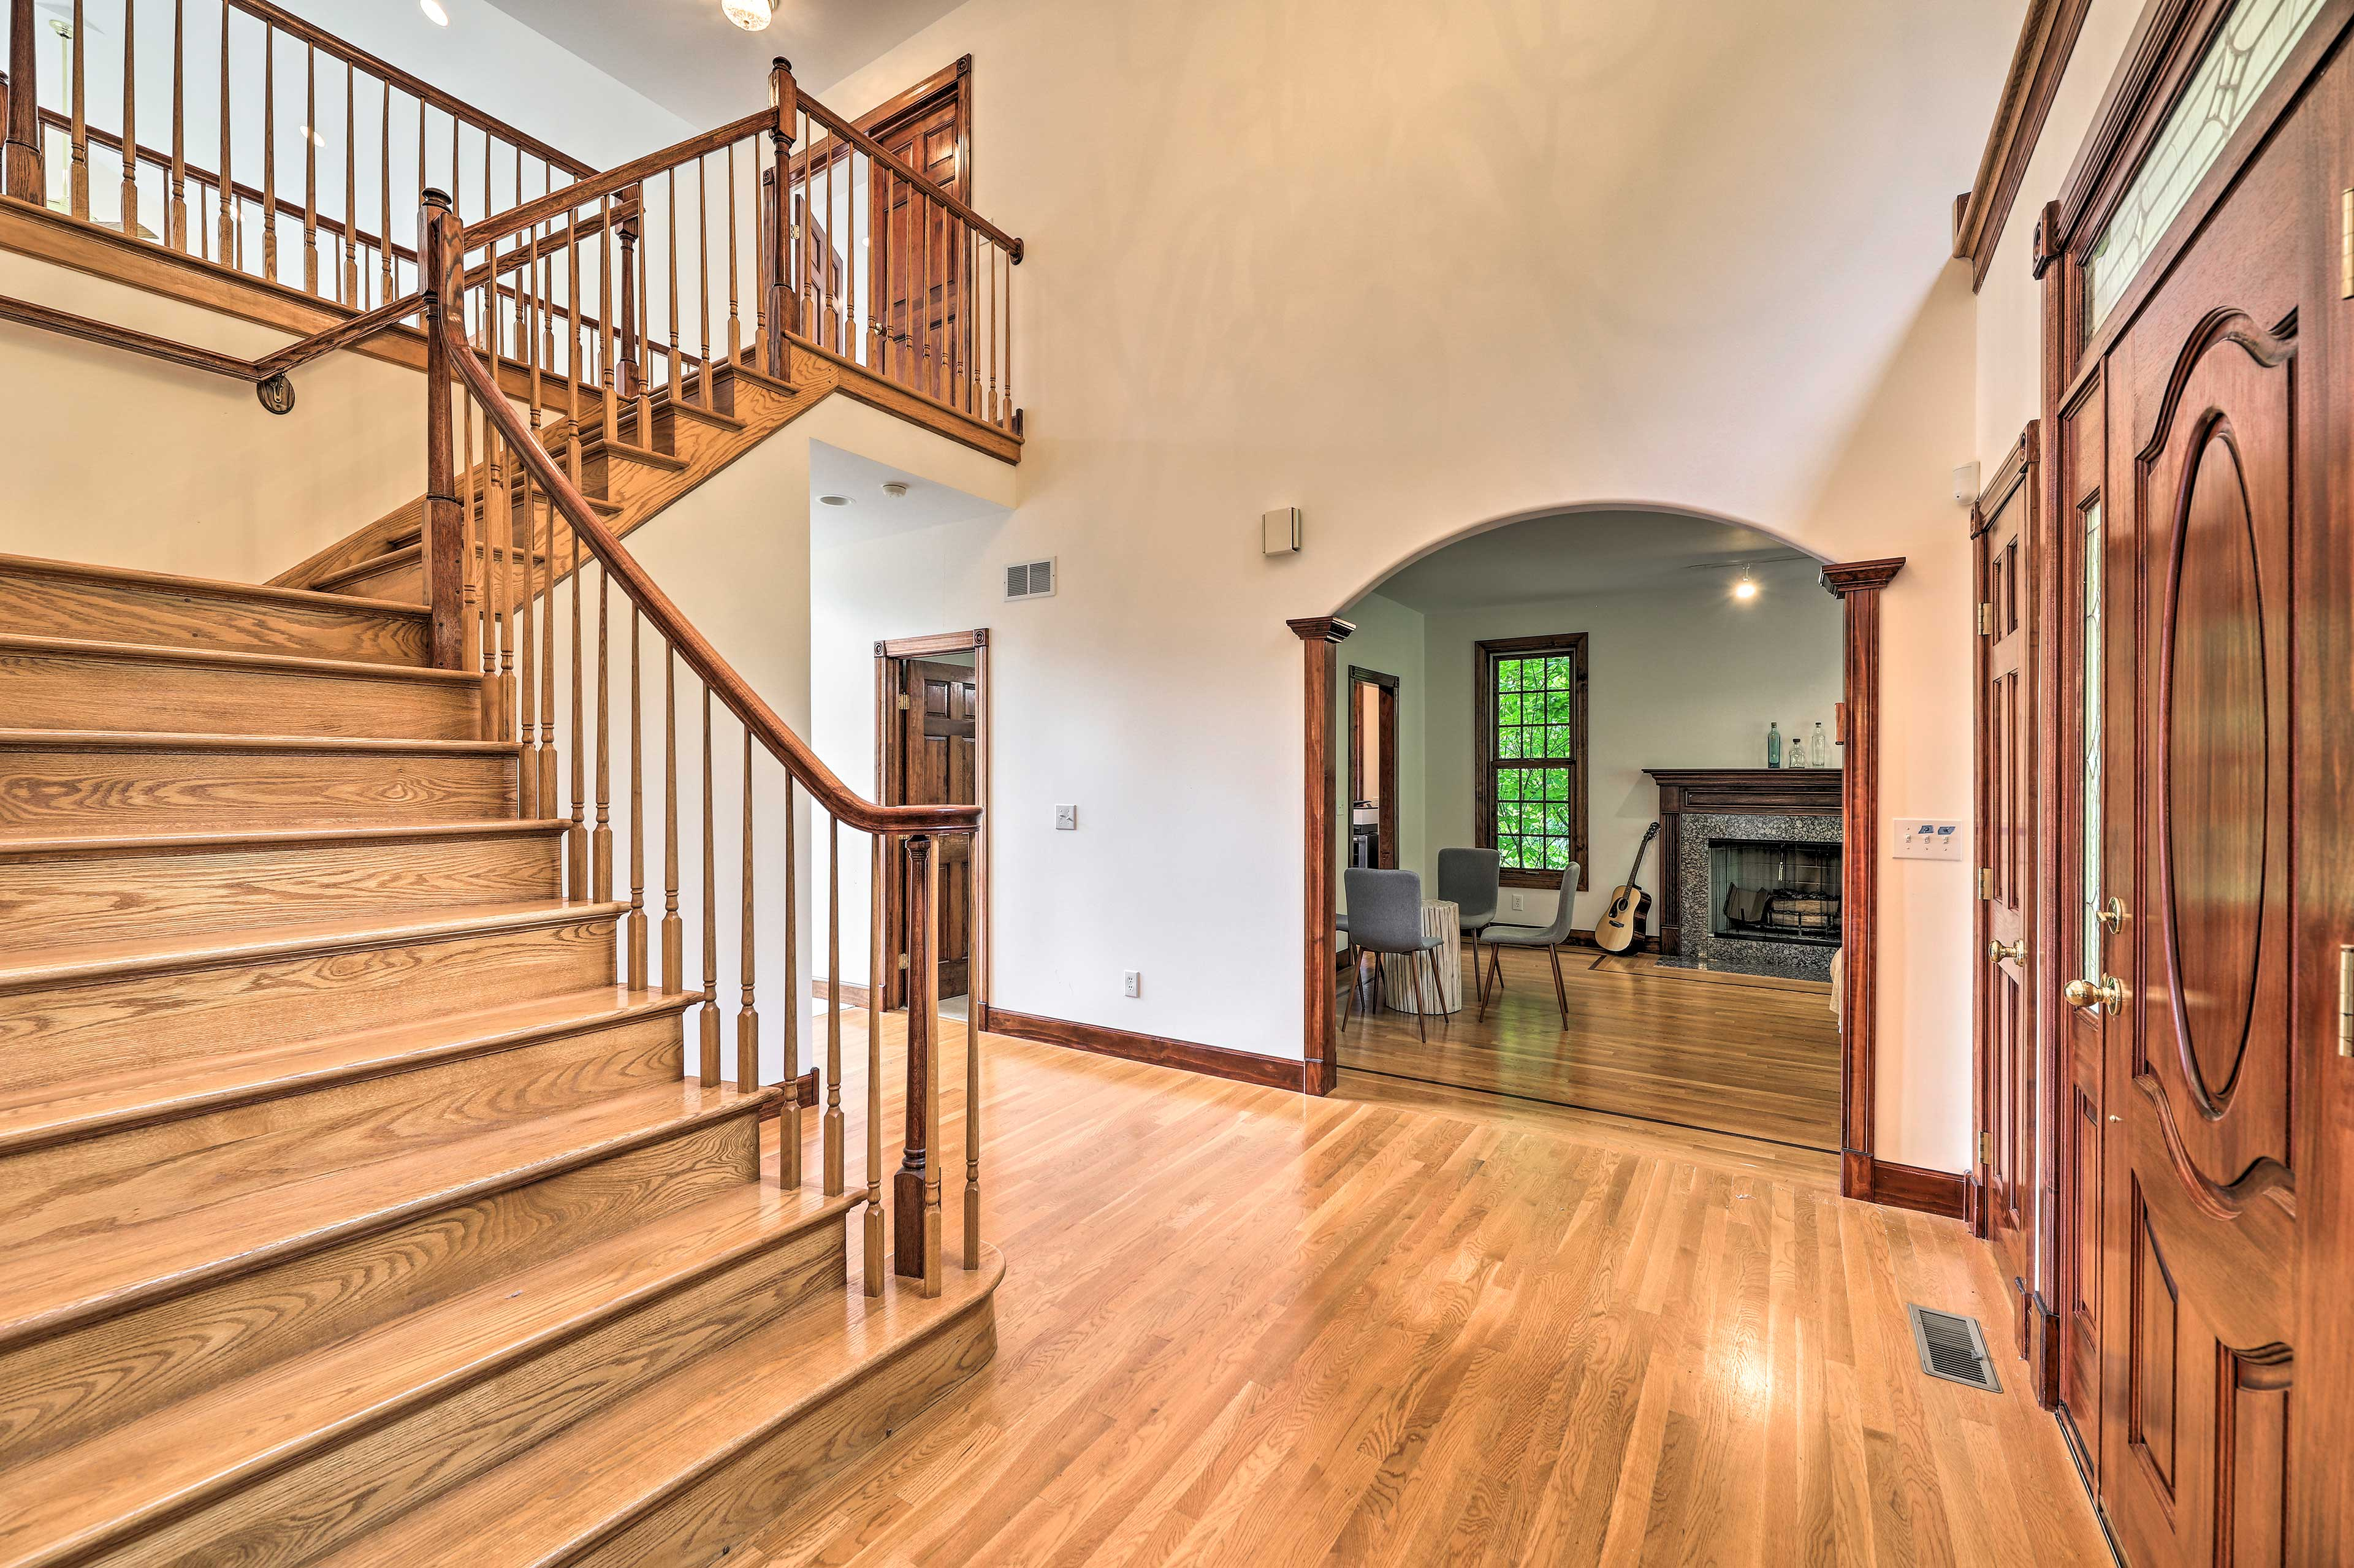 Head up the grand staircase to claim your bedroom!